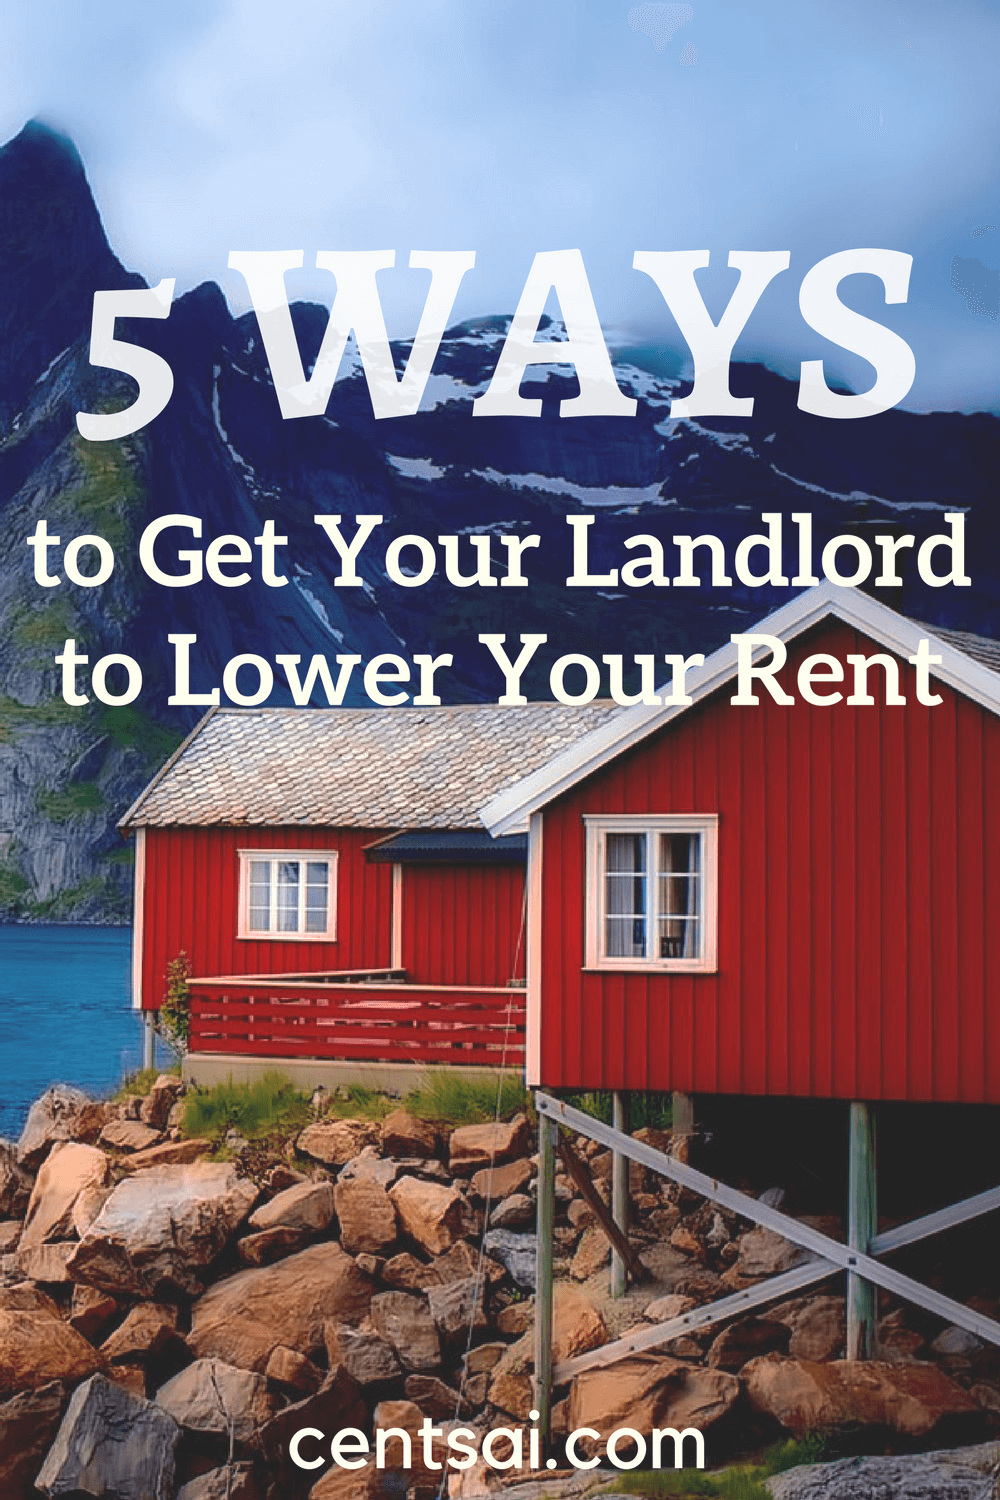 5 Ways to Get Your Landlord to Lower Your Rent. Renting may be cheaper than you think if you take the right approach. Check out these five ways to lower your apartment's sticker price.